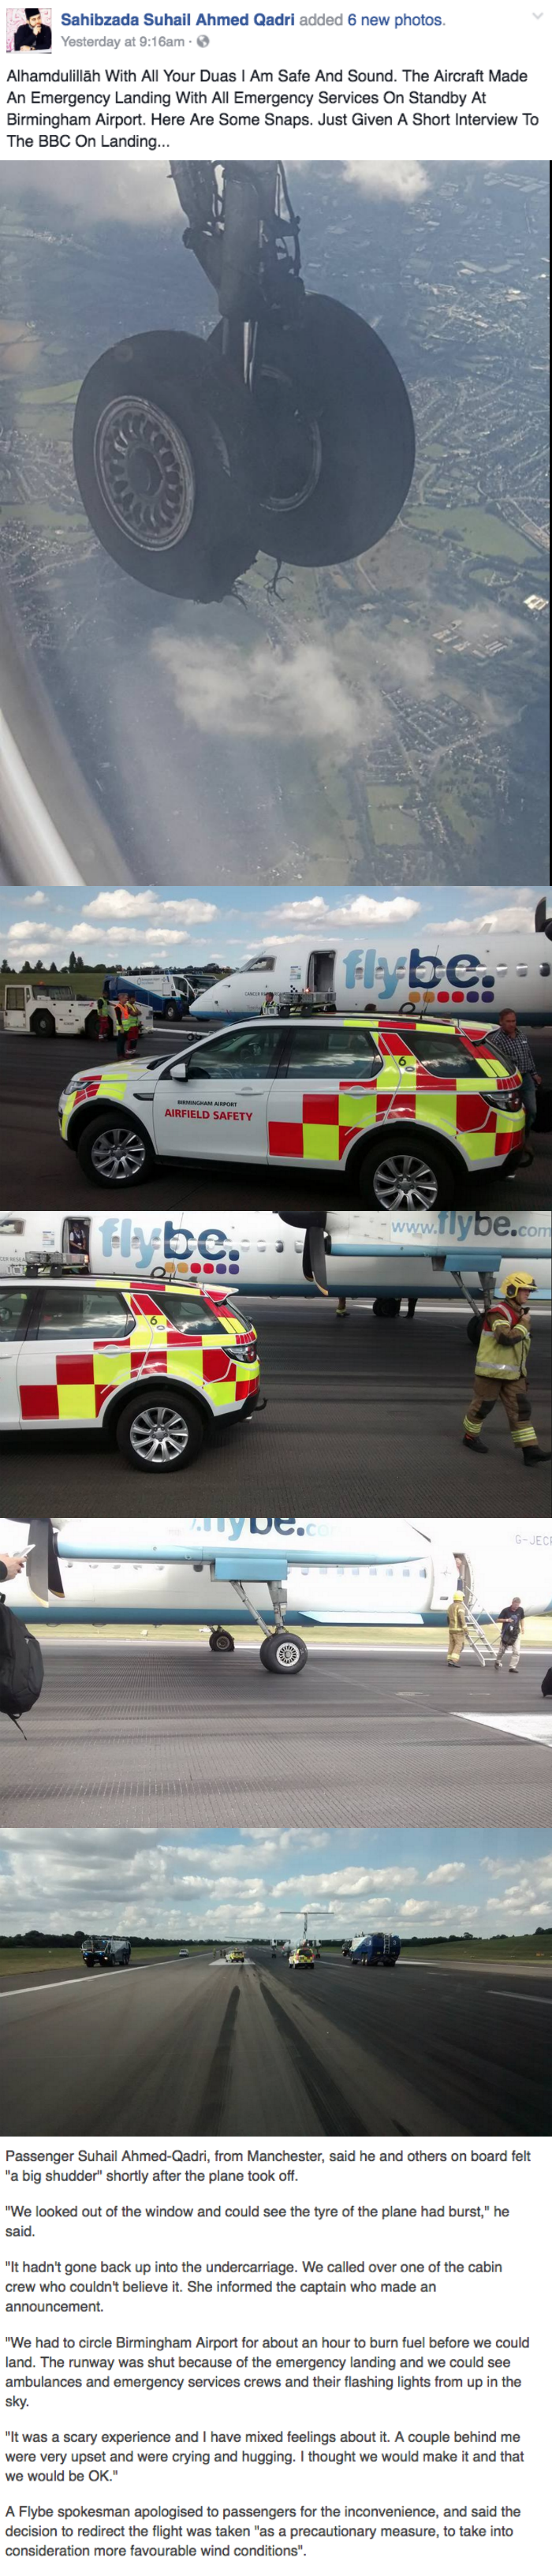 fail facebook image tire bursts on flight from Amsterdam and passengers alert pilot for emergency landing